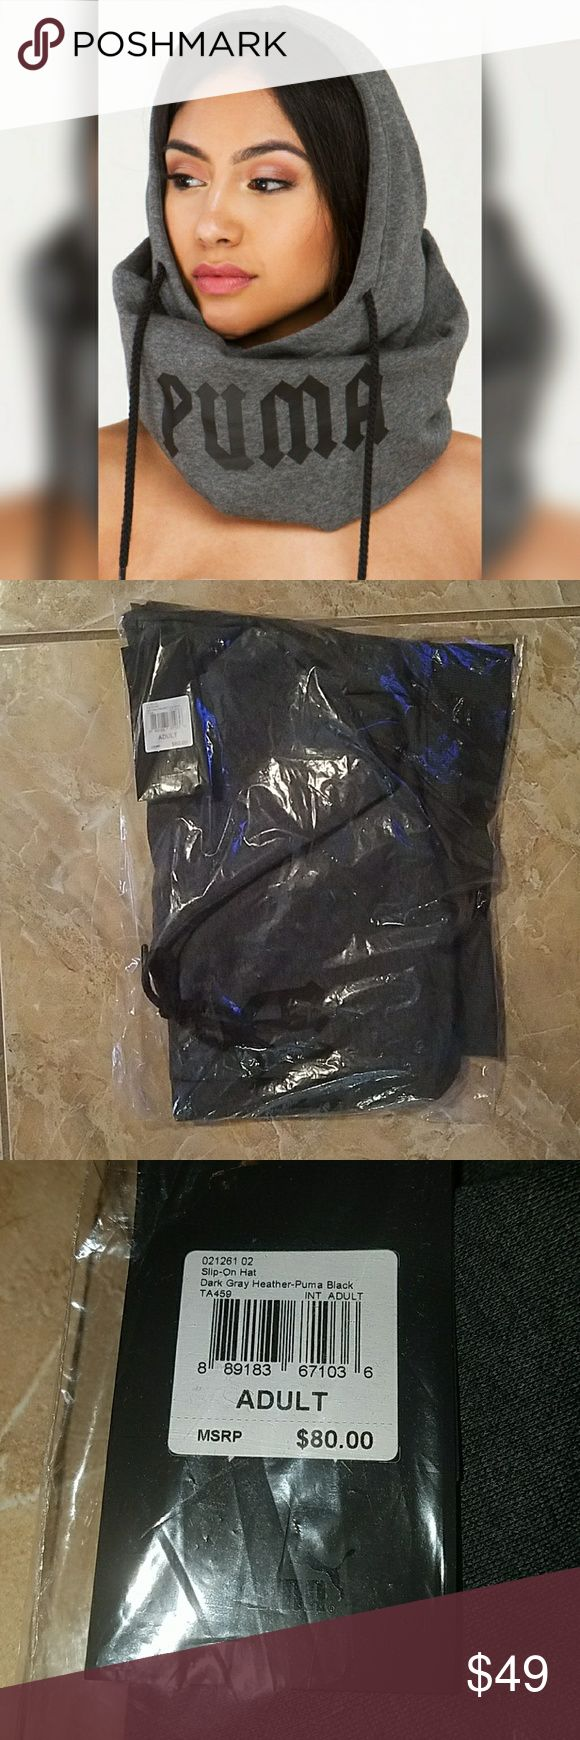 Fenty Puma Rihanna Hoody Slip on Hoodie Hat Brand new never taken out of original packaging. Guaranteed authentic purchased at Puma.com. one size fits all $80 sold out! Accessories Hats